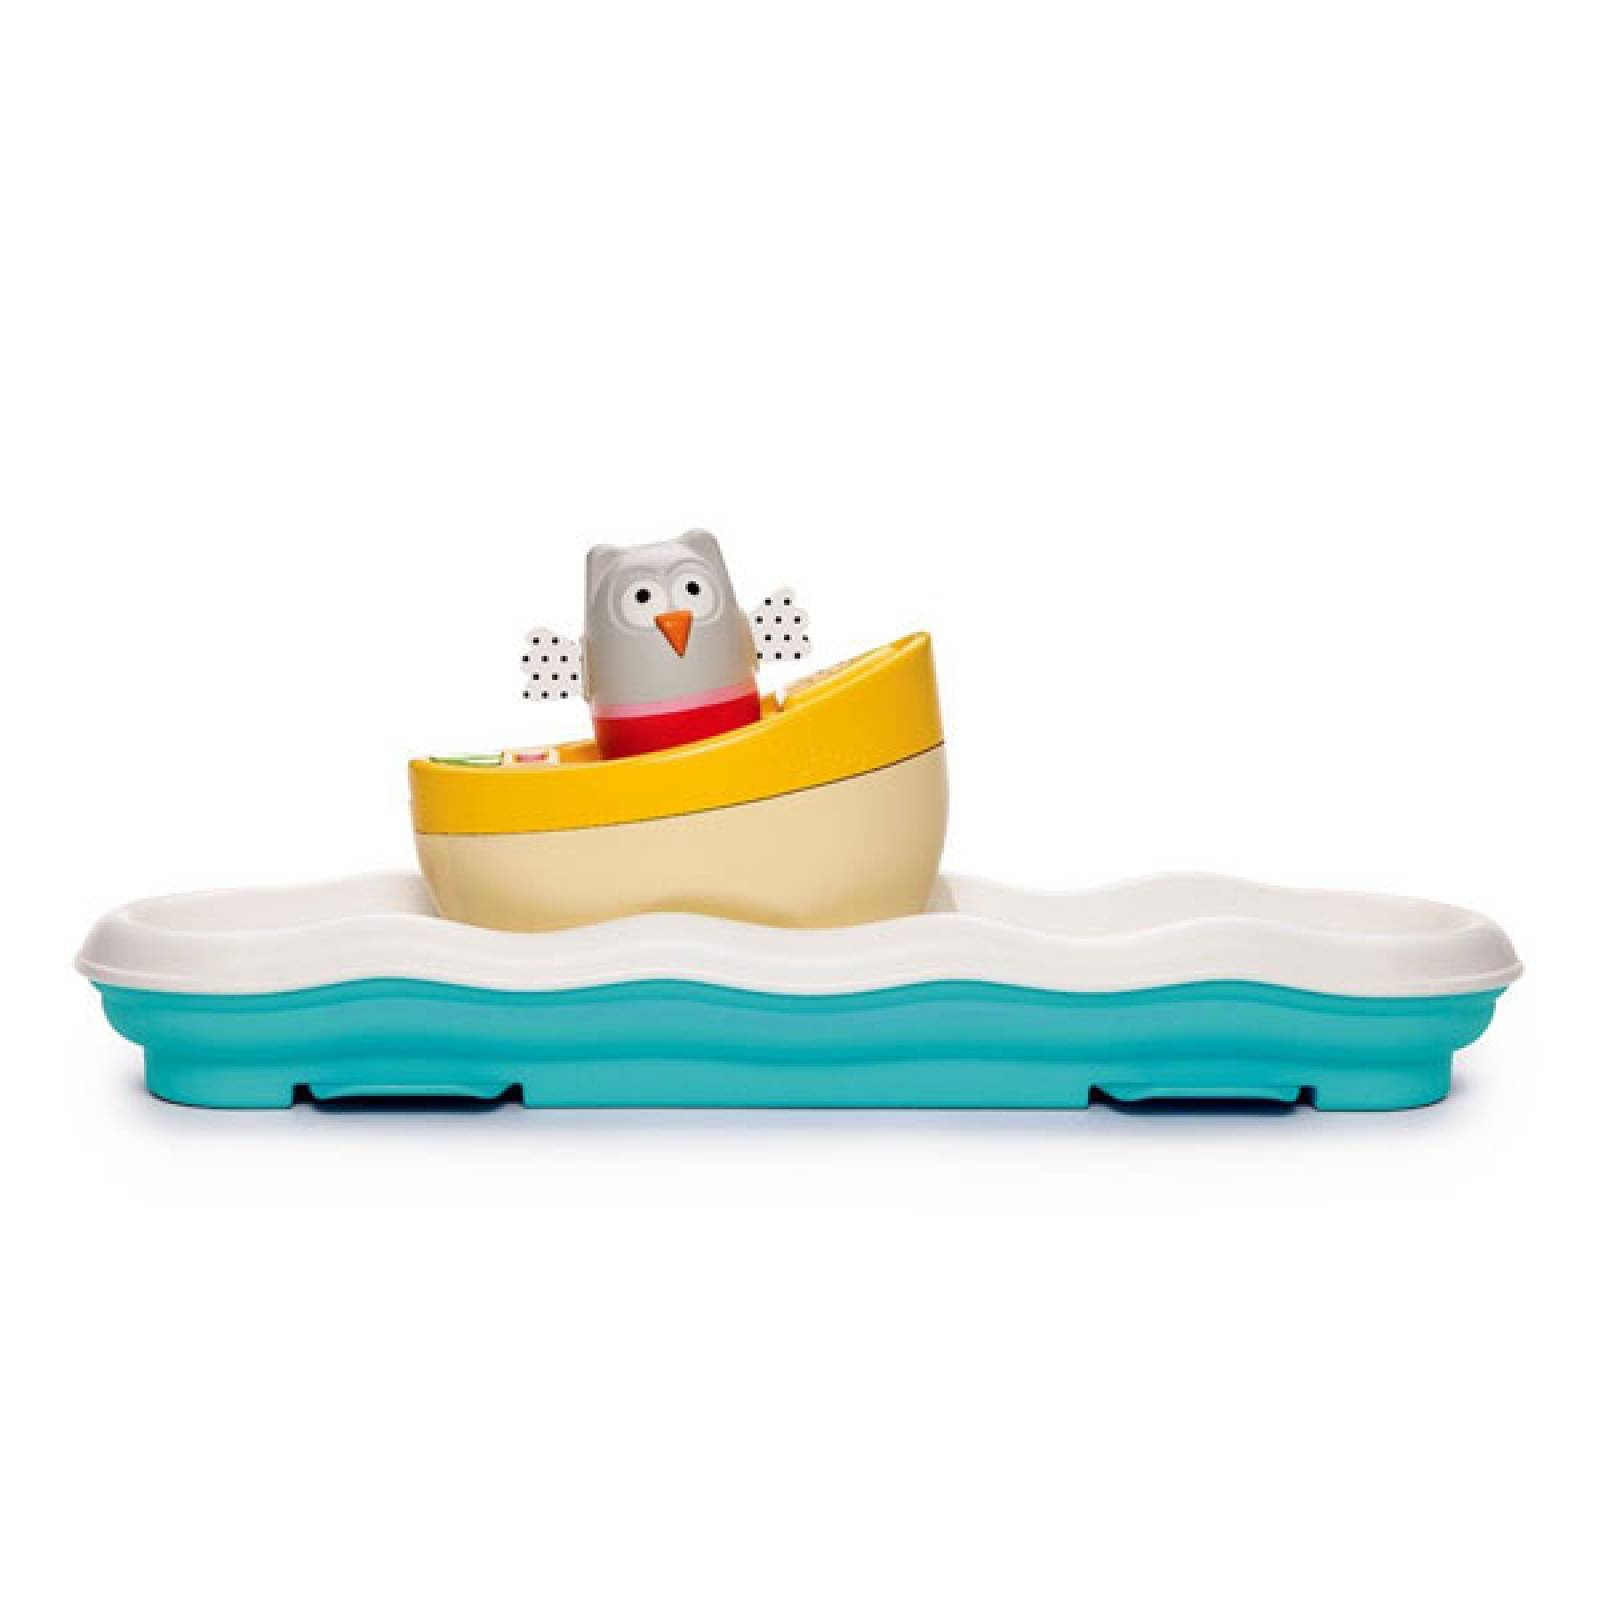 Musical Boat Cot Toy By Taf Toys 0+